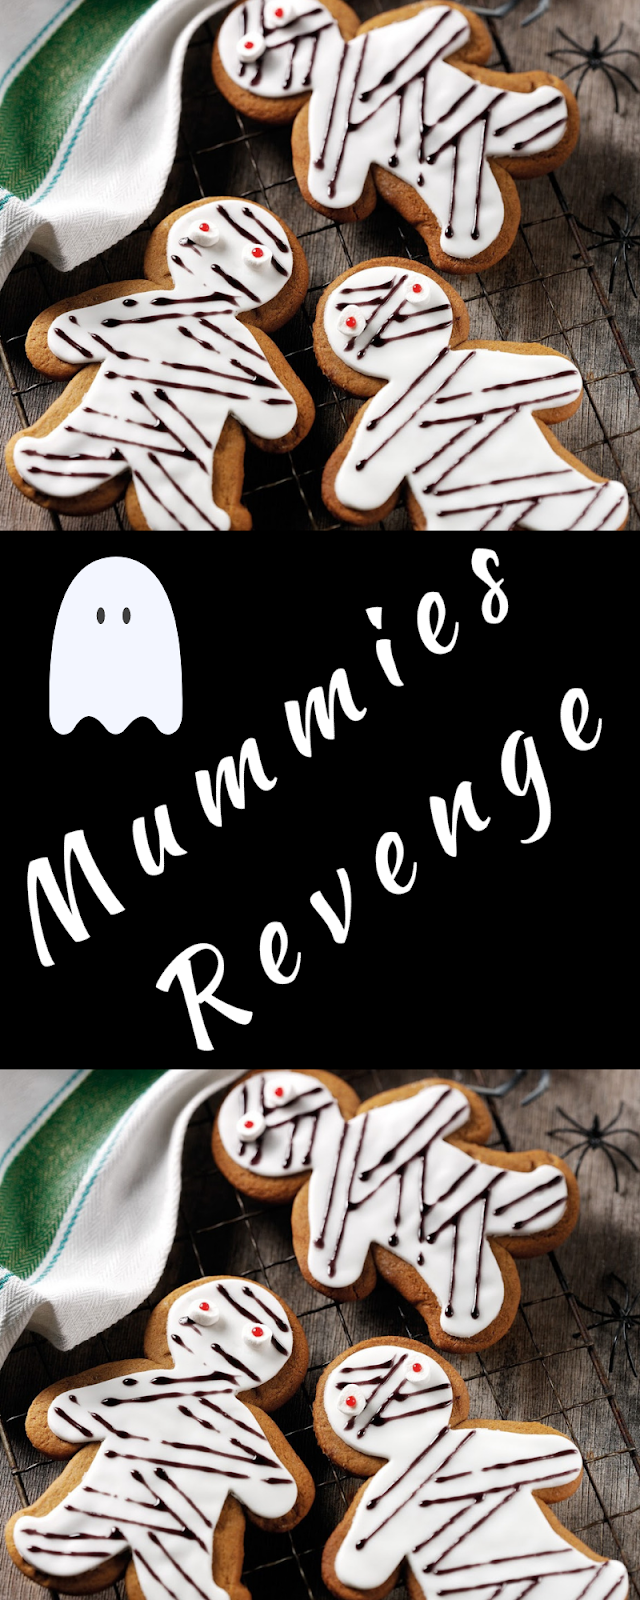 Mummies Revenge: Halloween Gingerbread Mummies